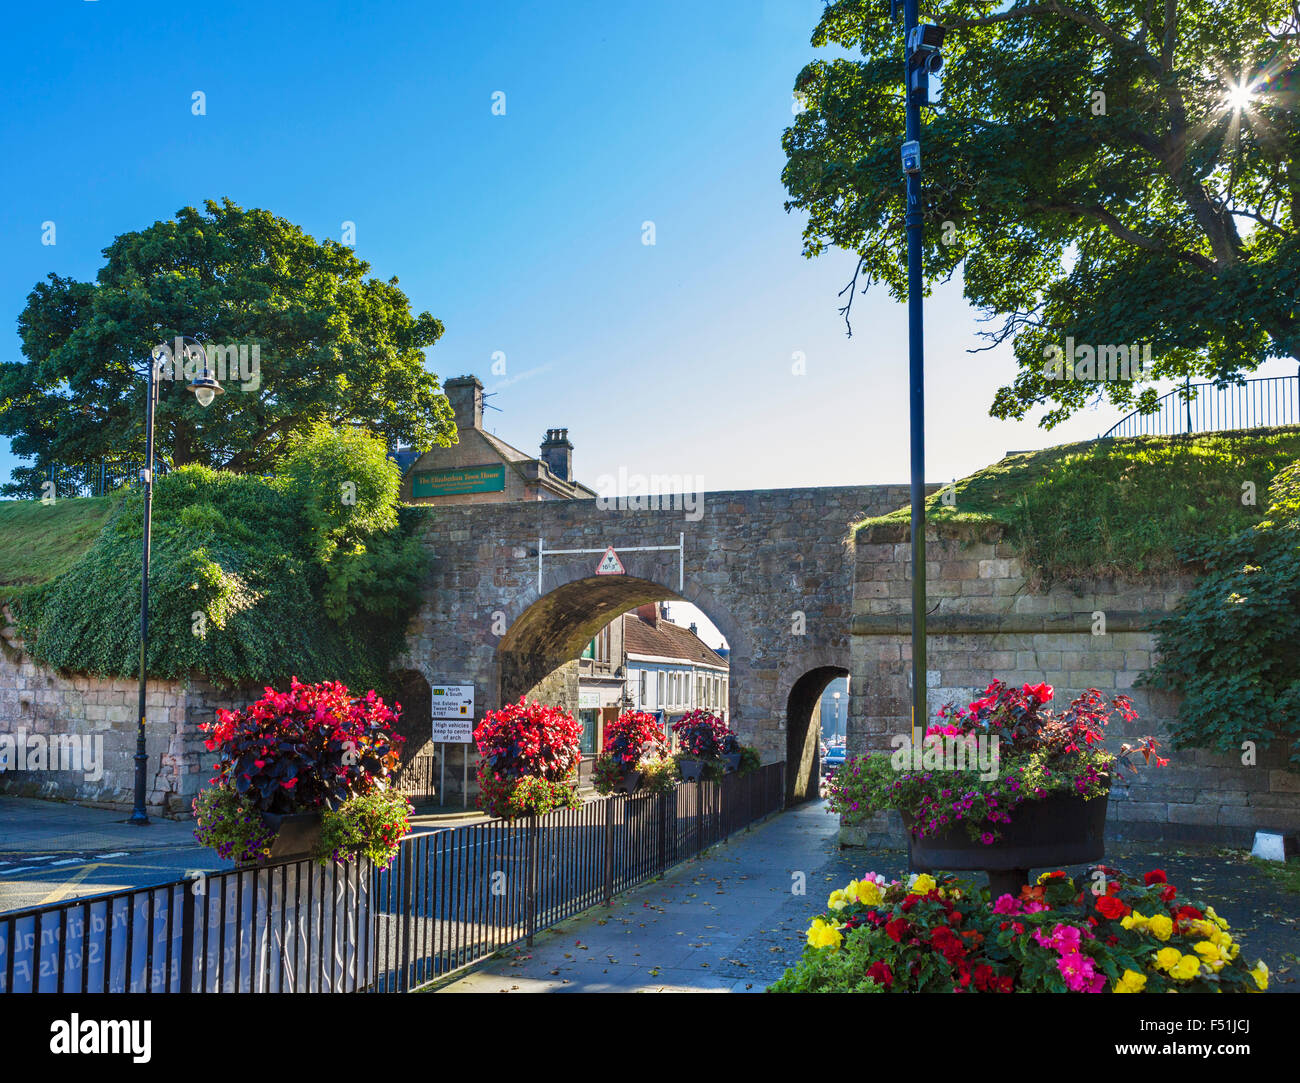 Scots Gate in the old town walls, Berwick-upon-Tweed, Northumberland, England, UK - Stock Image